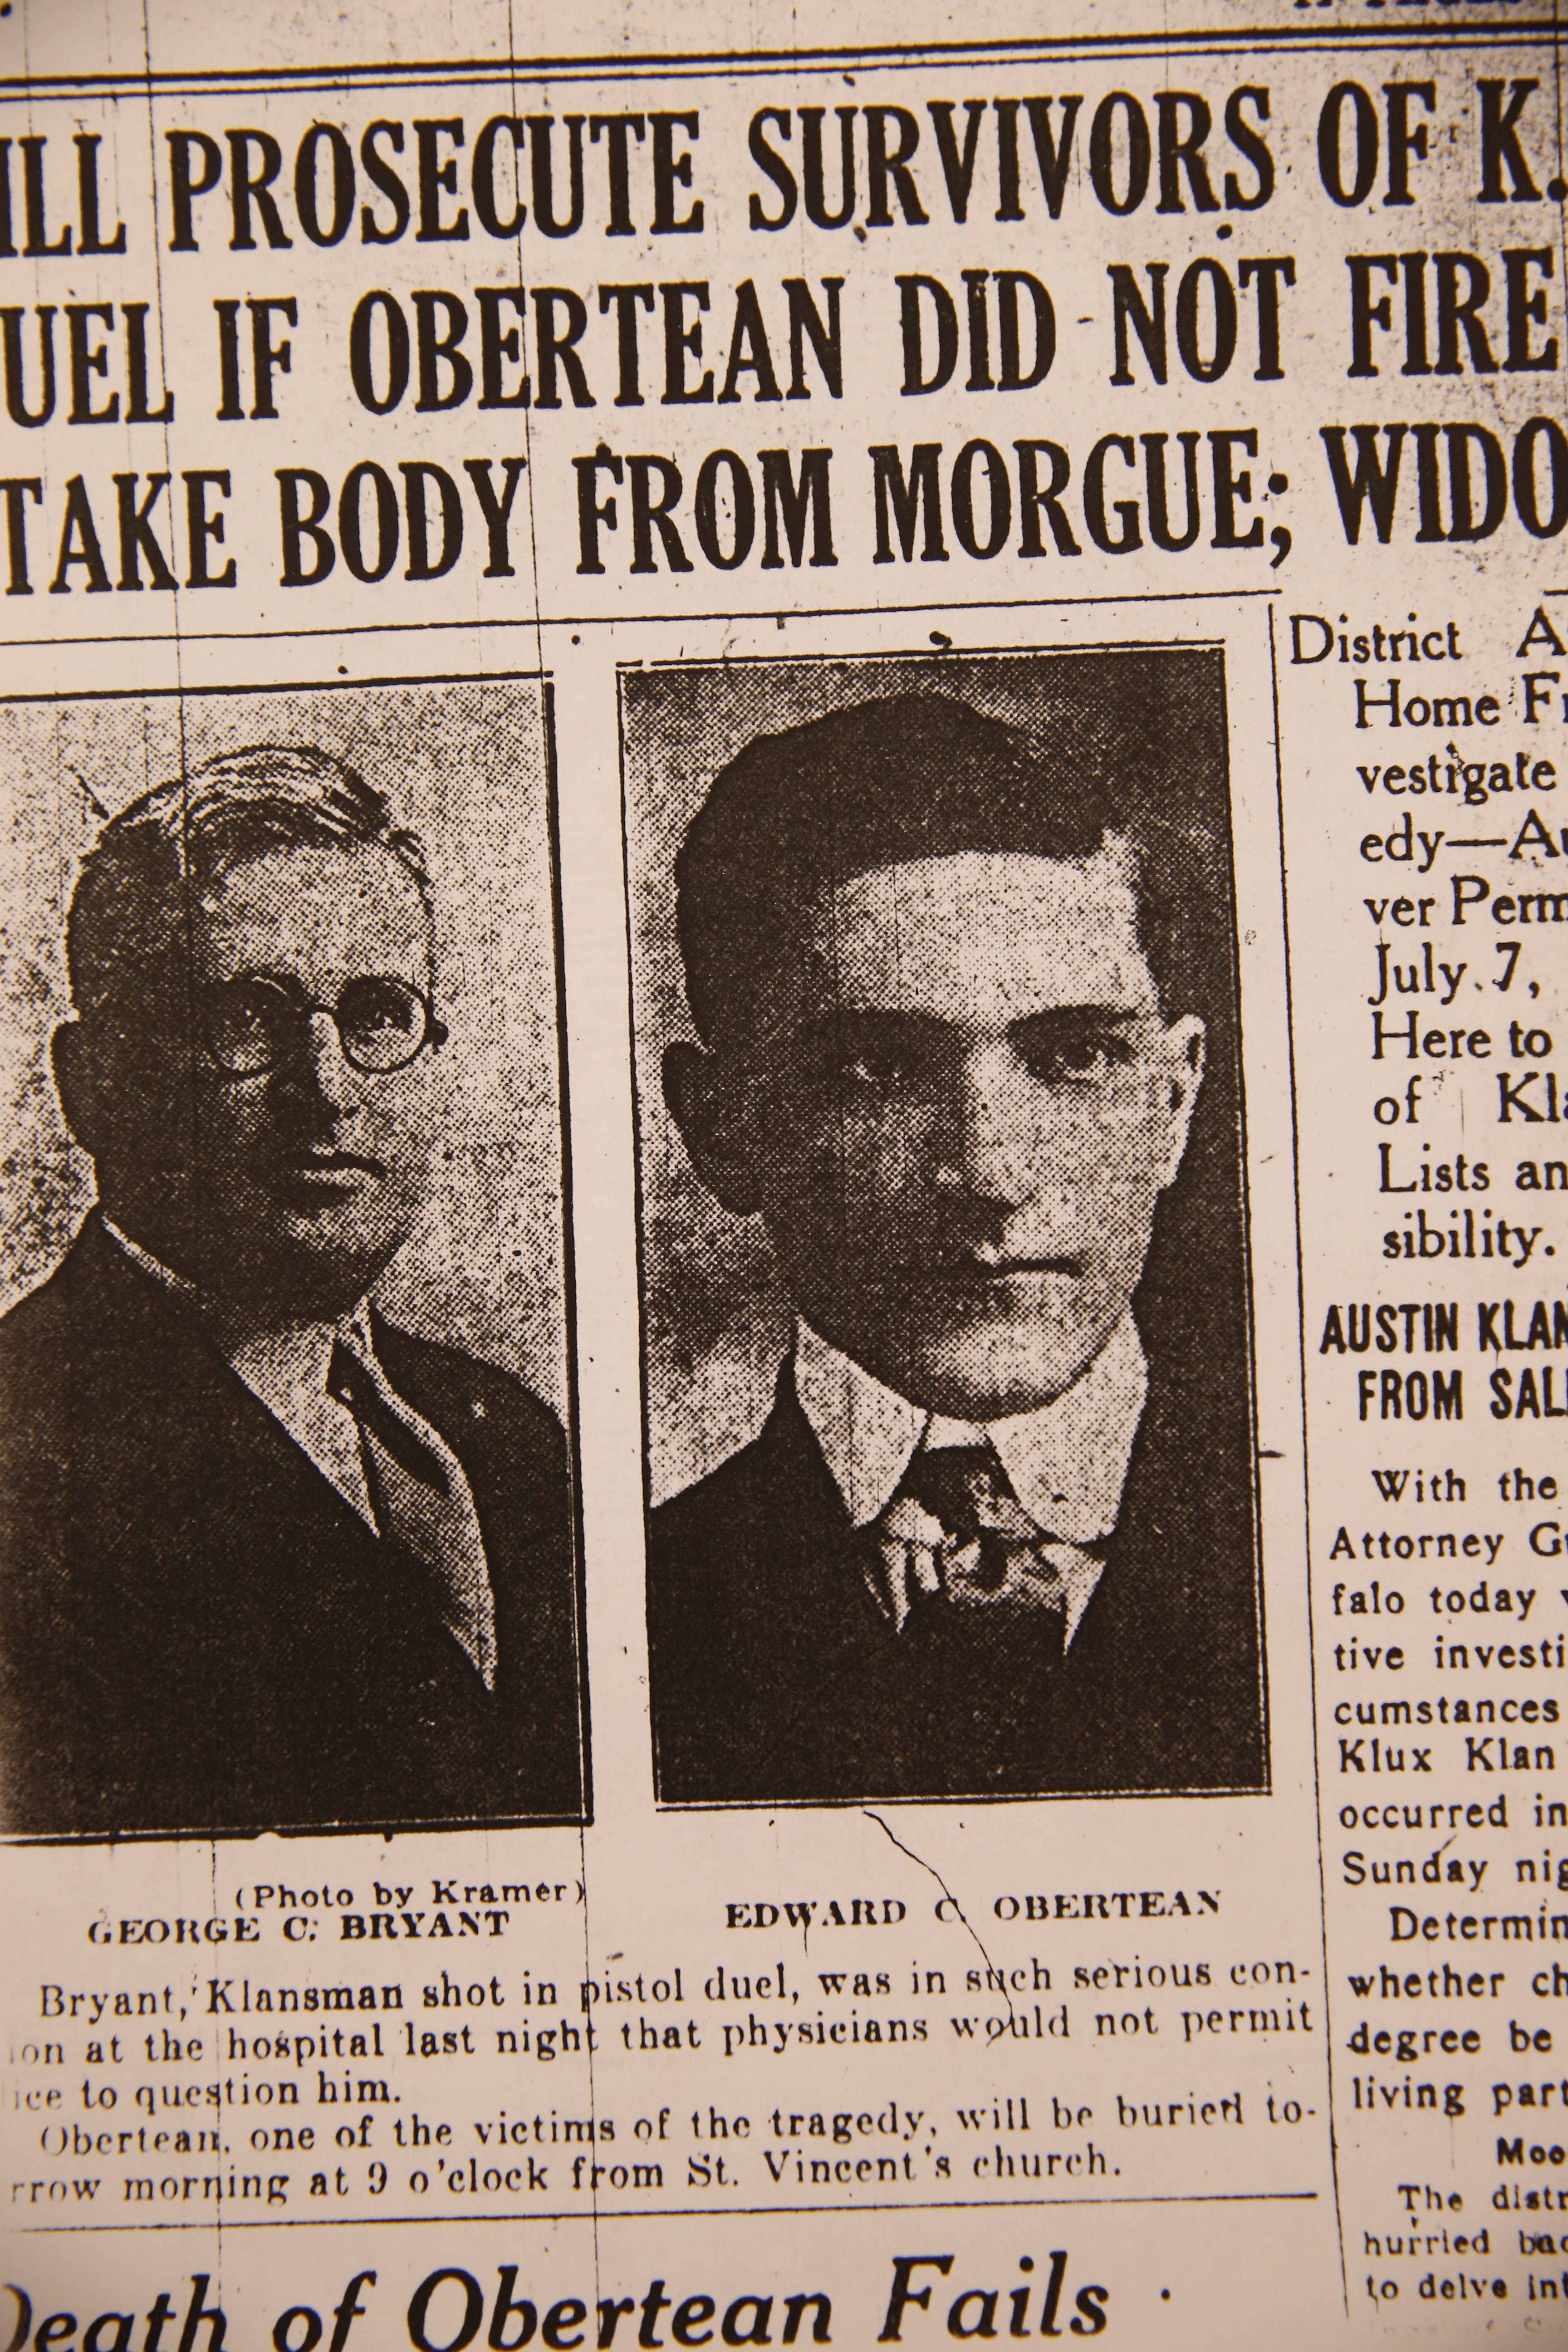 """A Sept. 3, 1924, article from the Buffalo Courier about Edward C. Obertean, an undercover Buffalo police """"operative"""" who was shot and killed in August 1924. The incident is retold in Shawn Lay's book on the Klan's activities along the Niagara Frontier."""